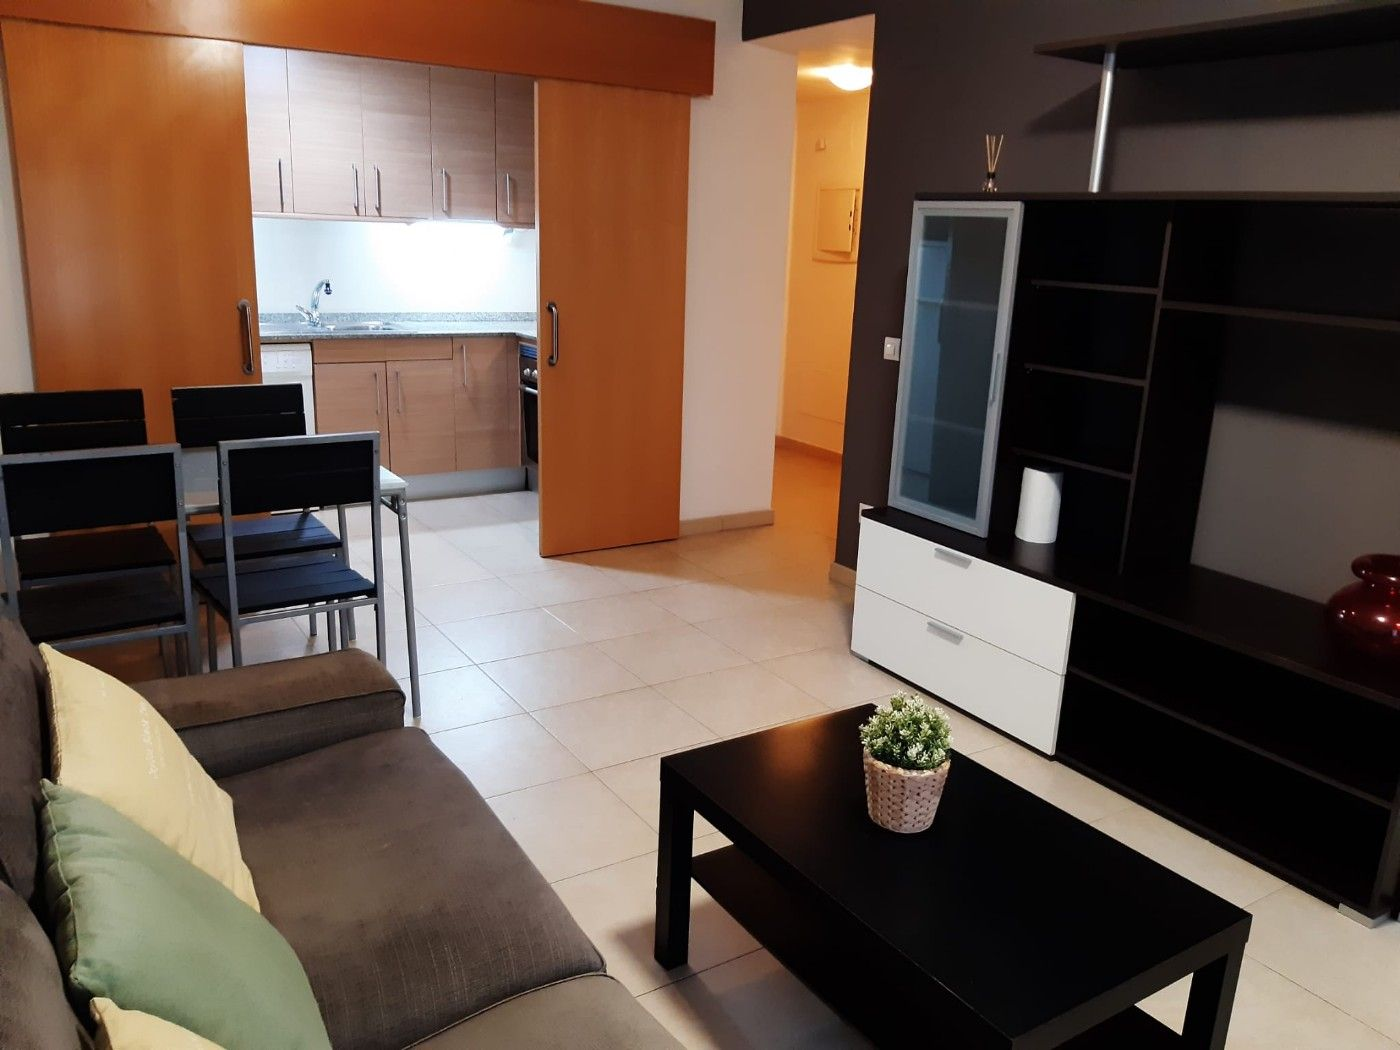 Flat in Carrer prolongacio raval, 1. 1 dorm, salon, cocina, baño, ext